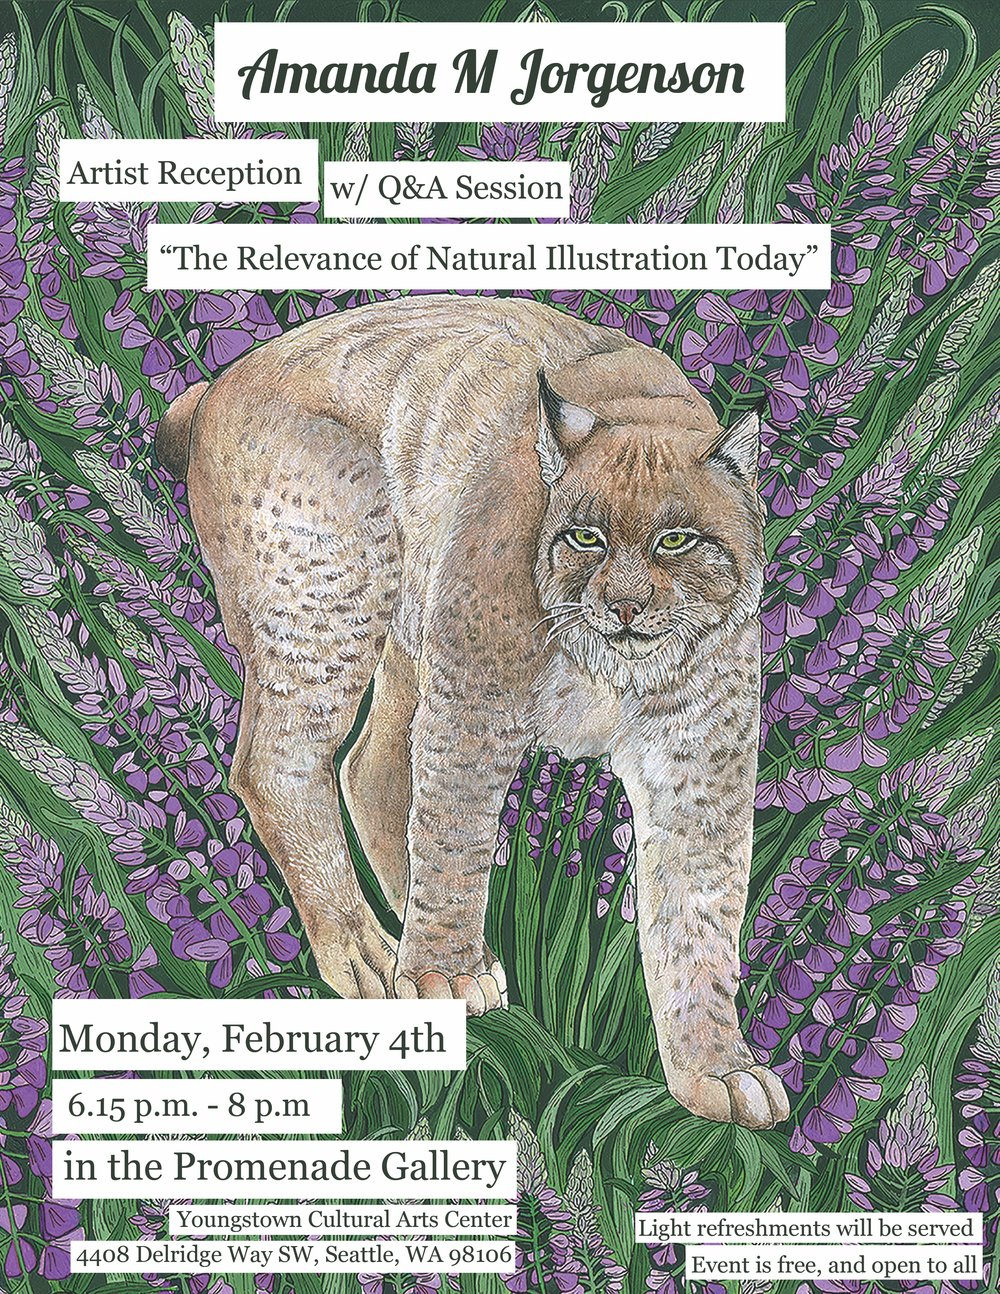 - Join me on Monday, February 4th at 6:15 p.m. to view my art, and join me and other illustrators in discussing the relevance of Natural Science Illustration in the age of photography and technology. Light refreshments will be served. The event is free and open to the public.